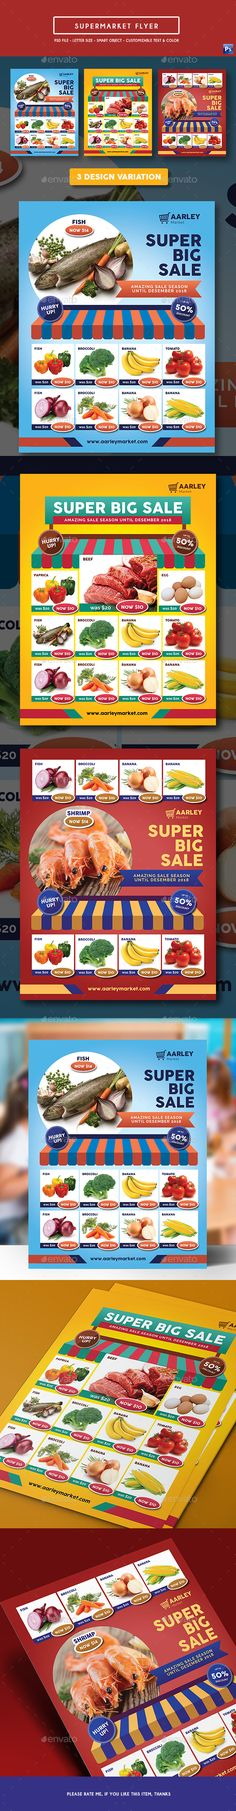 Supermarket / Product Promotion Flyer by arifpoernomo This Supermarket / Product Promotion Flyer, can be used for promote your product, Supermarket, Organic Market, Black Friday sale p